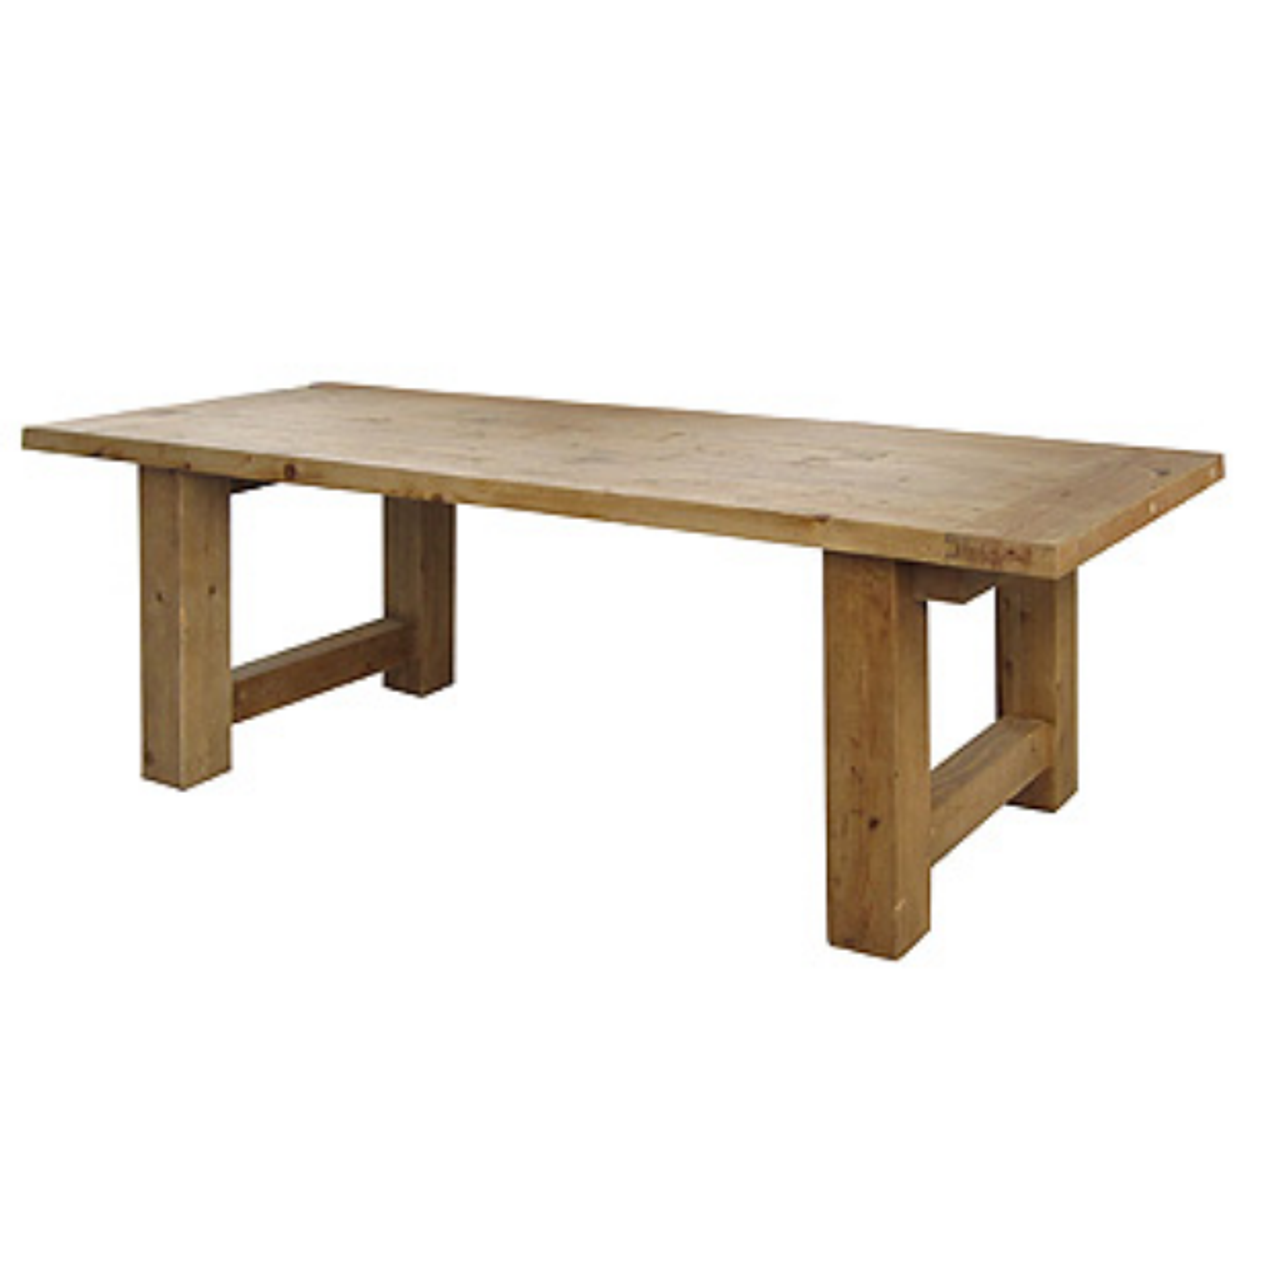 Barn House Solid Wood Rustic Dining Room Table 98 Zin Home